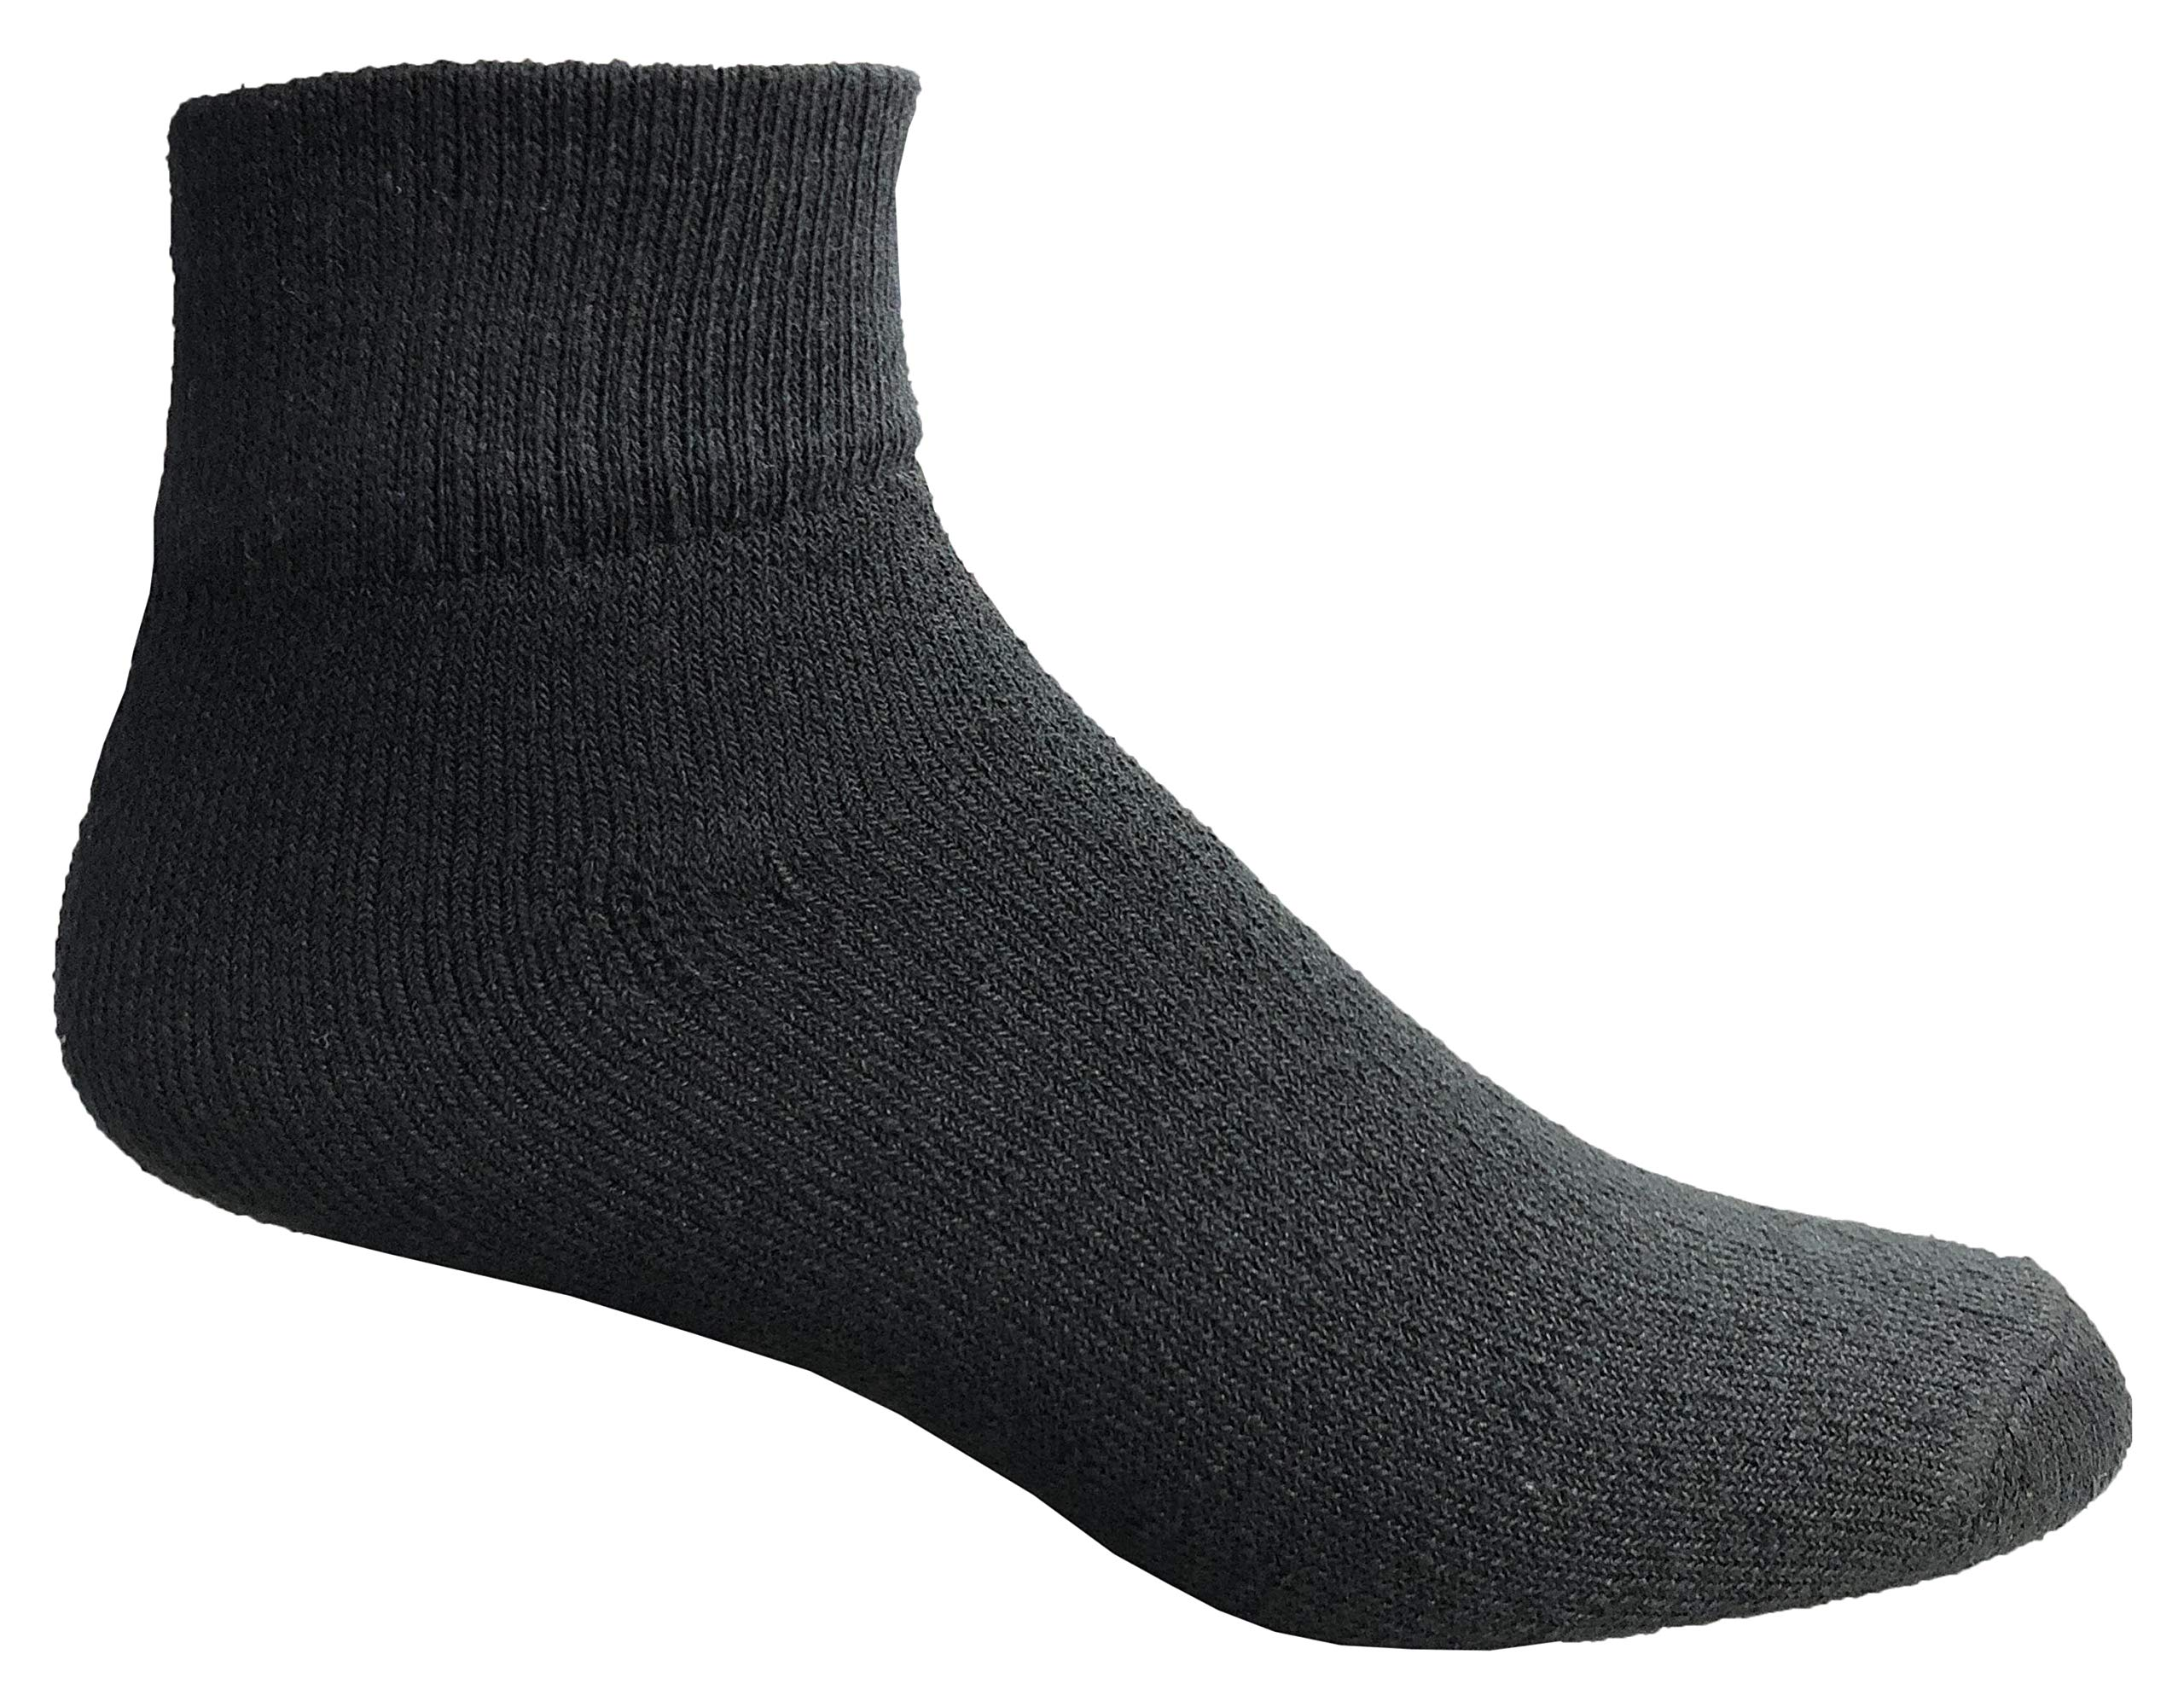 WSD Mens Ankle Socks, Wholesale Bulk Pack Athletic Sports Sock (120 Pairs Assorted) by Wholesale Sock Deals (Image #2)